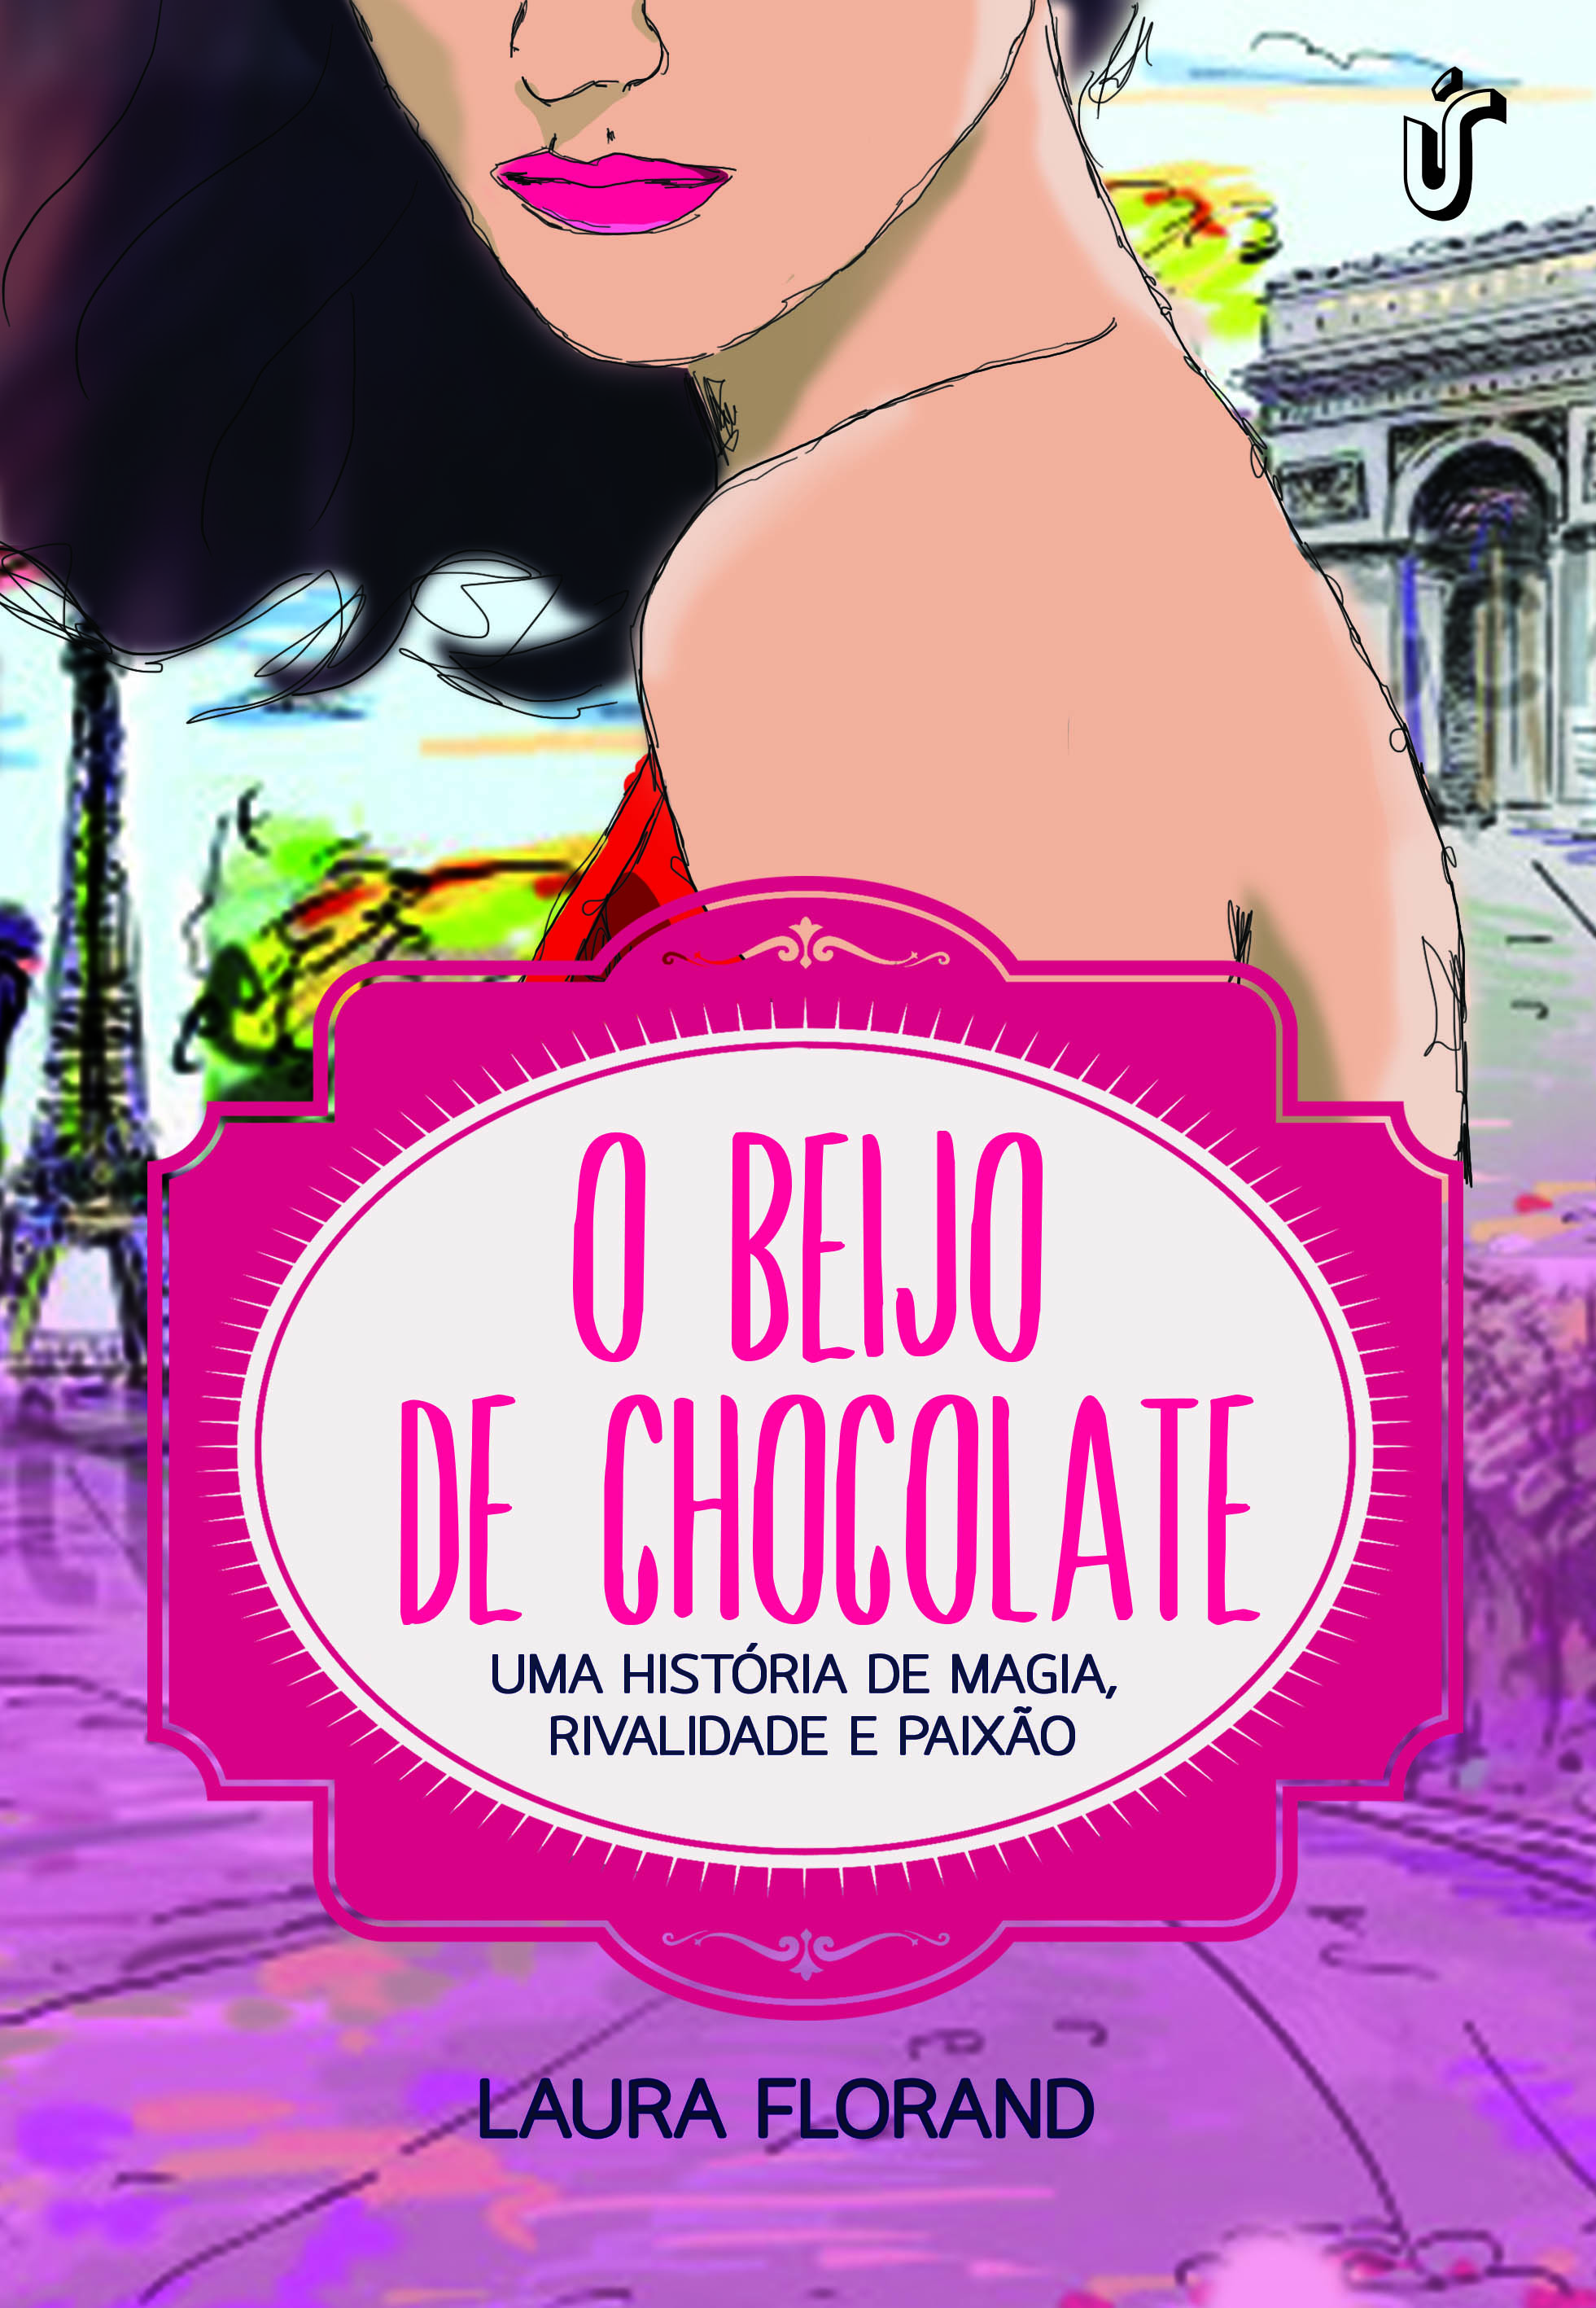 O beijo de chocolate